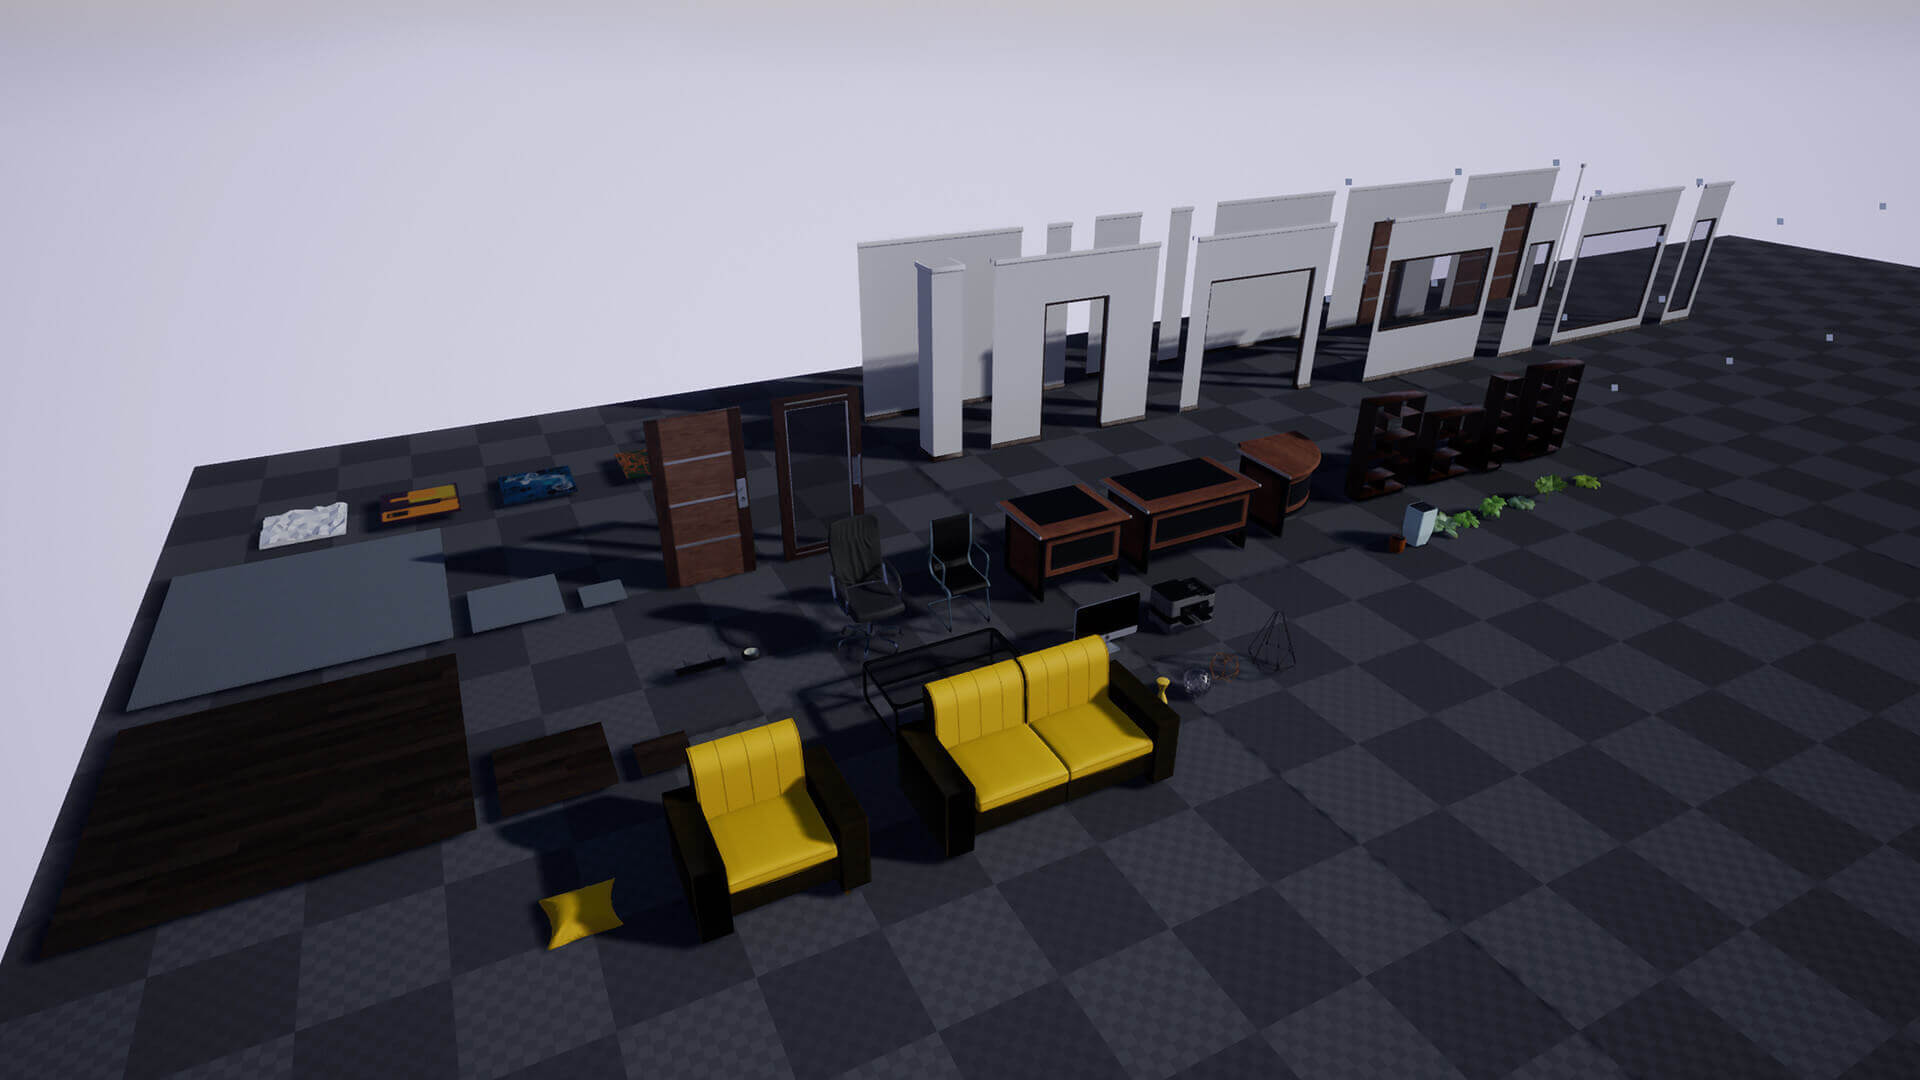 Modular Office Environment: Modular Office Pack - Polysquid Studios